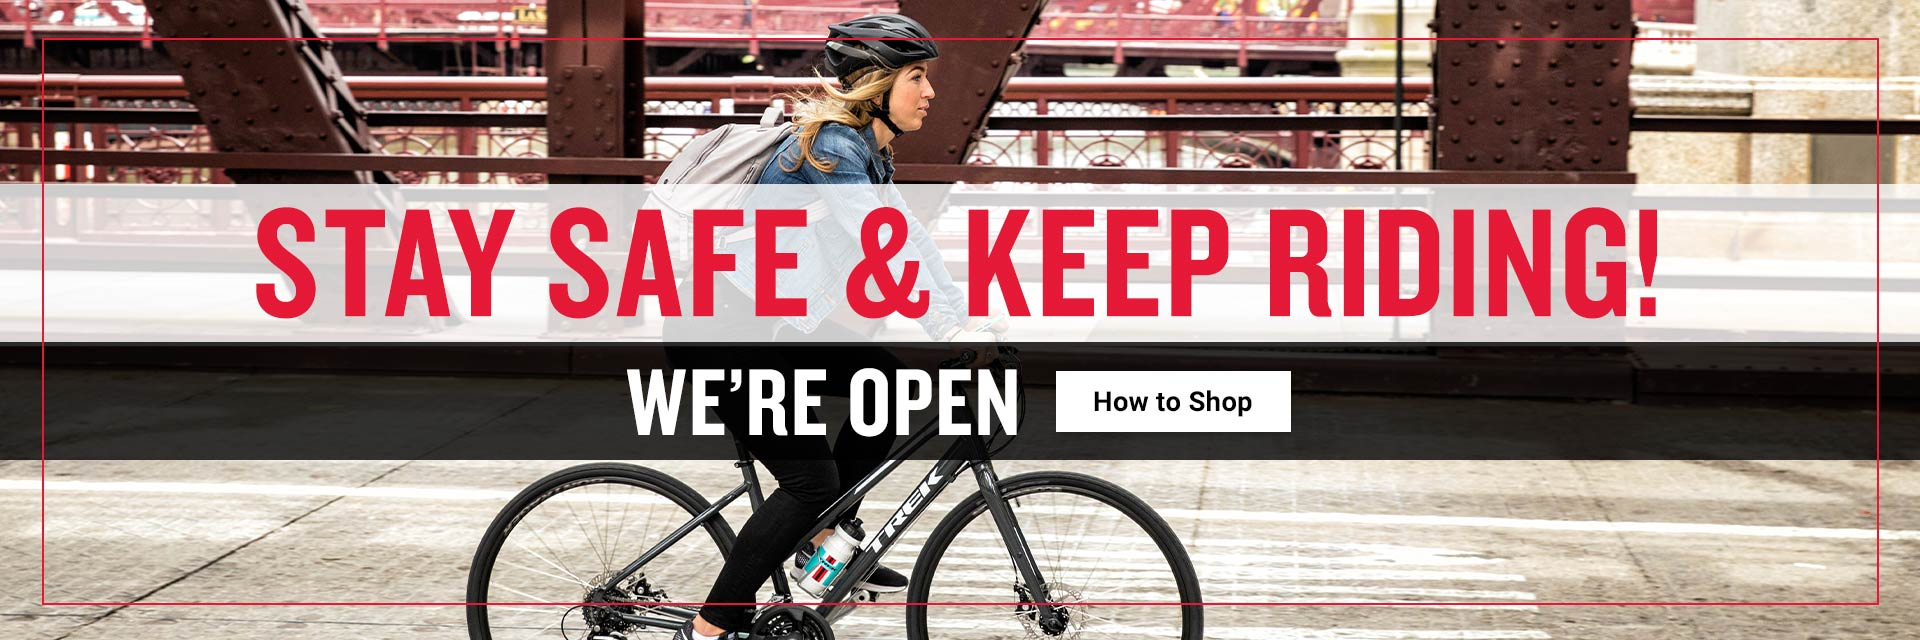 click here to shop safe